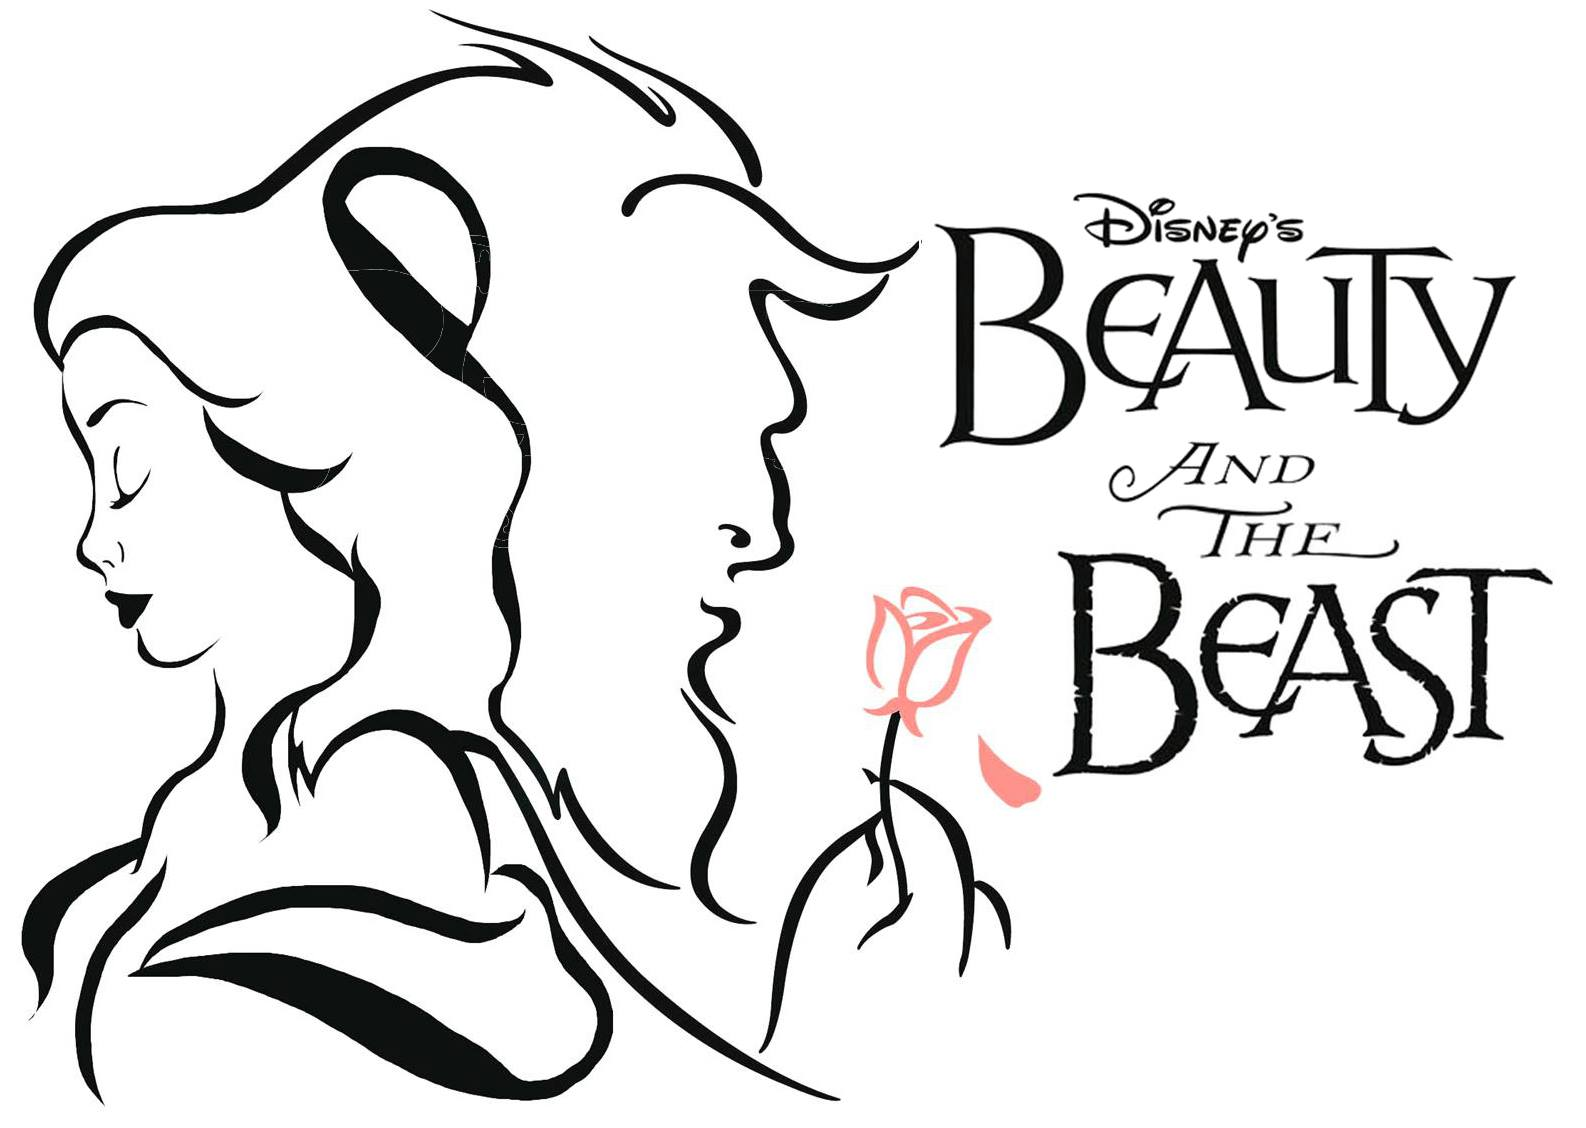 Beast clipart black and white black and white download Beauty and the beast black white clipart 4 clipart station jpg ... black and white download